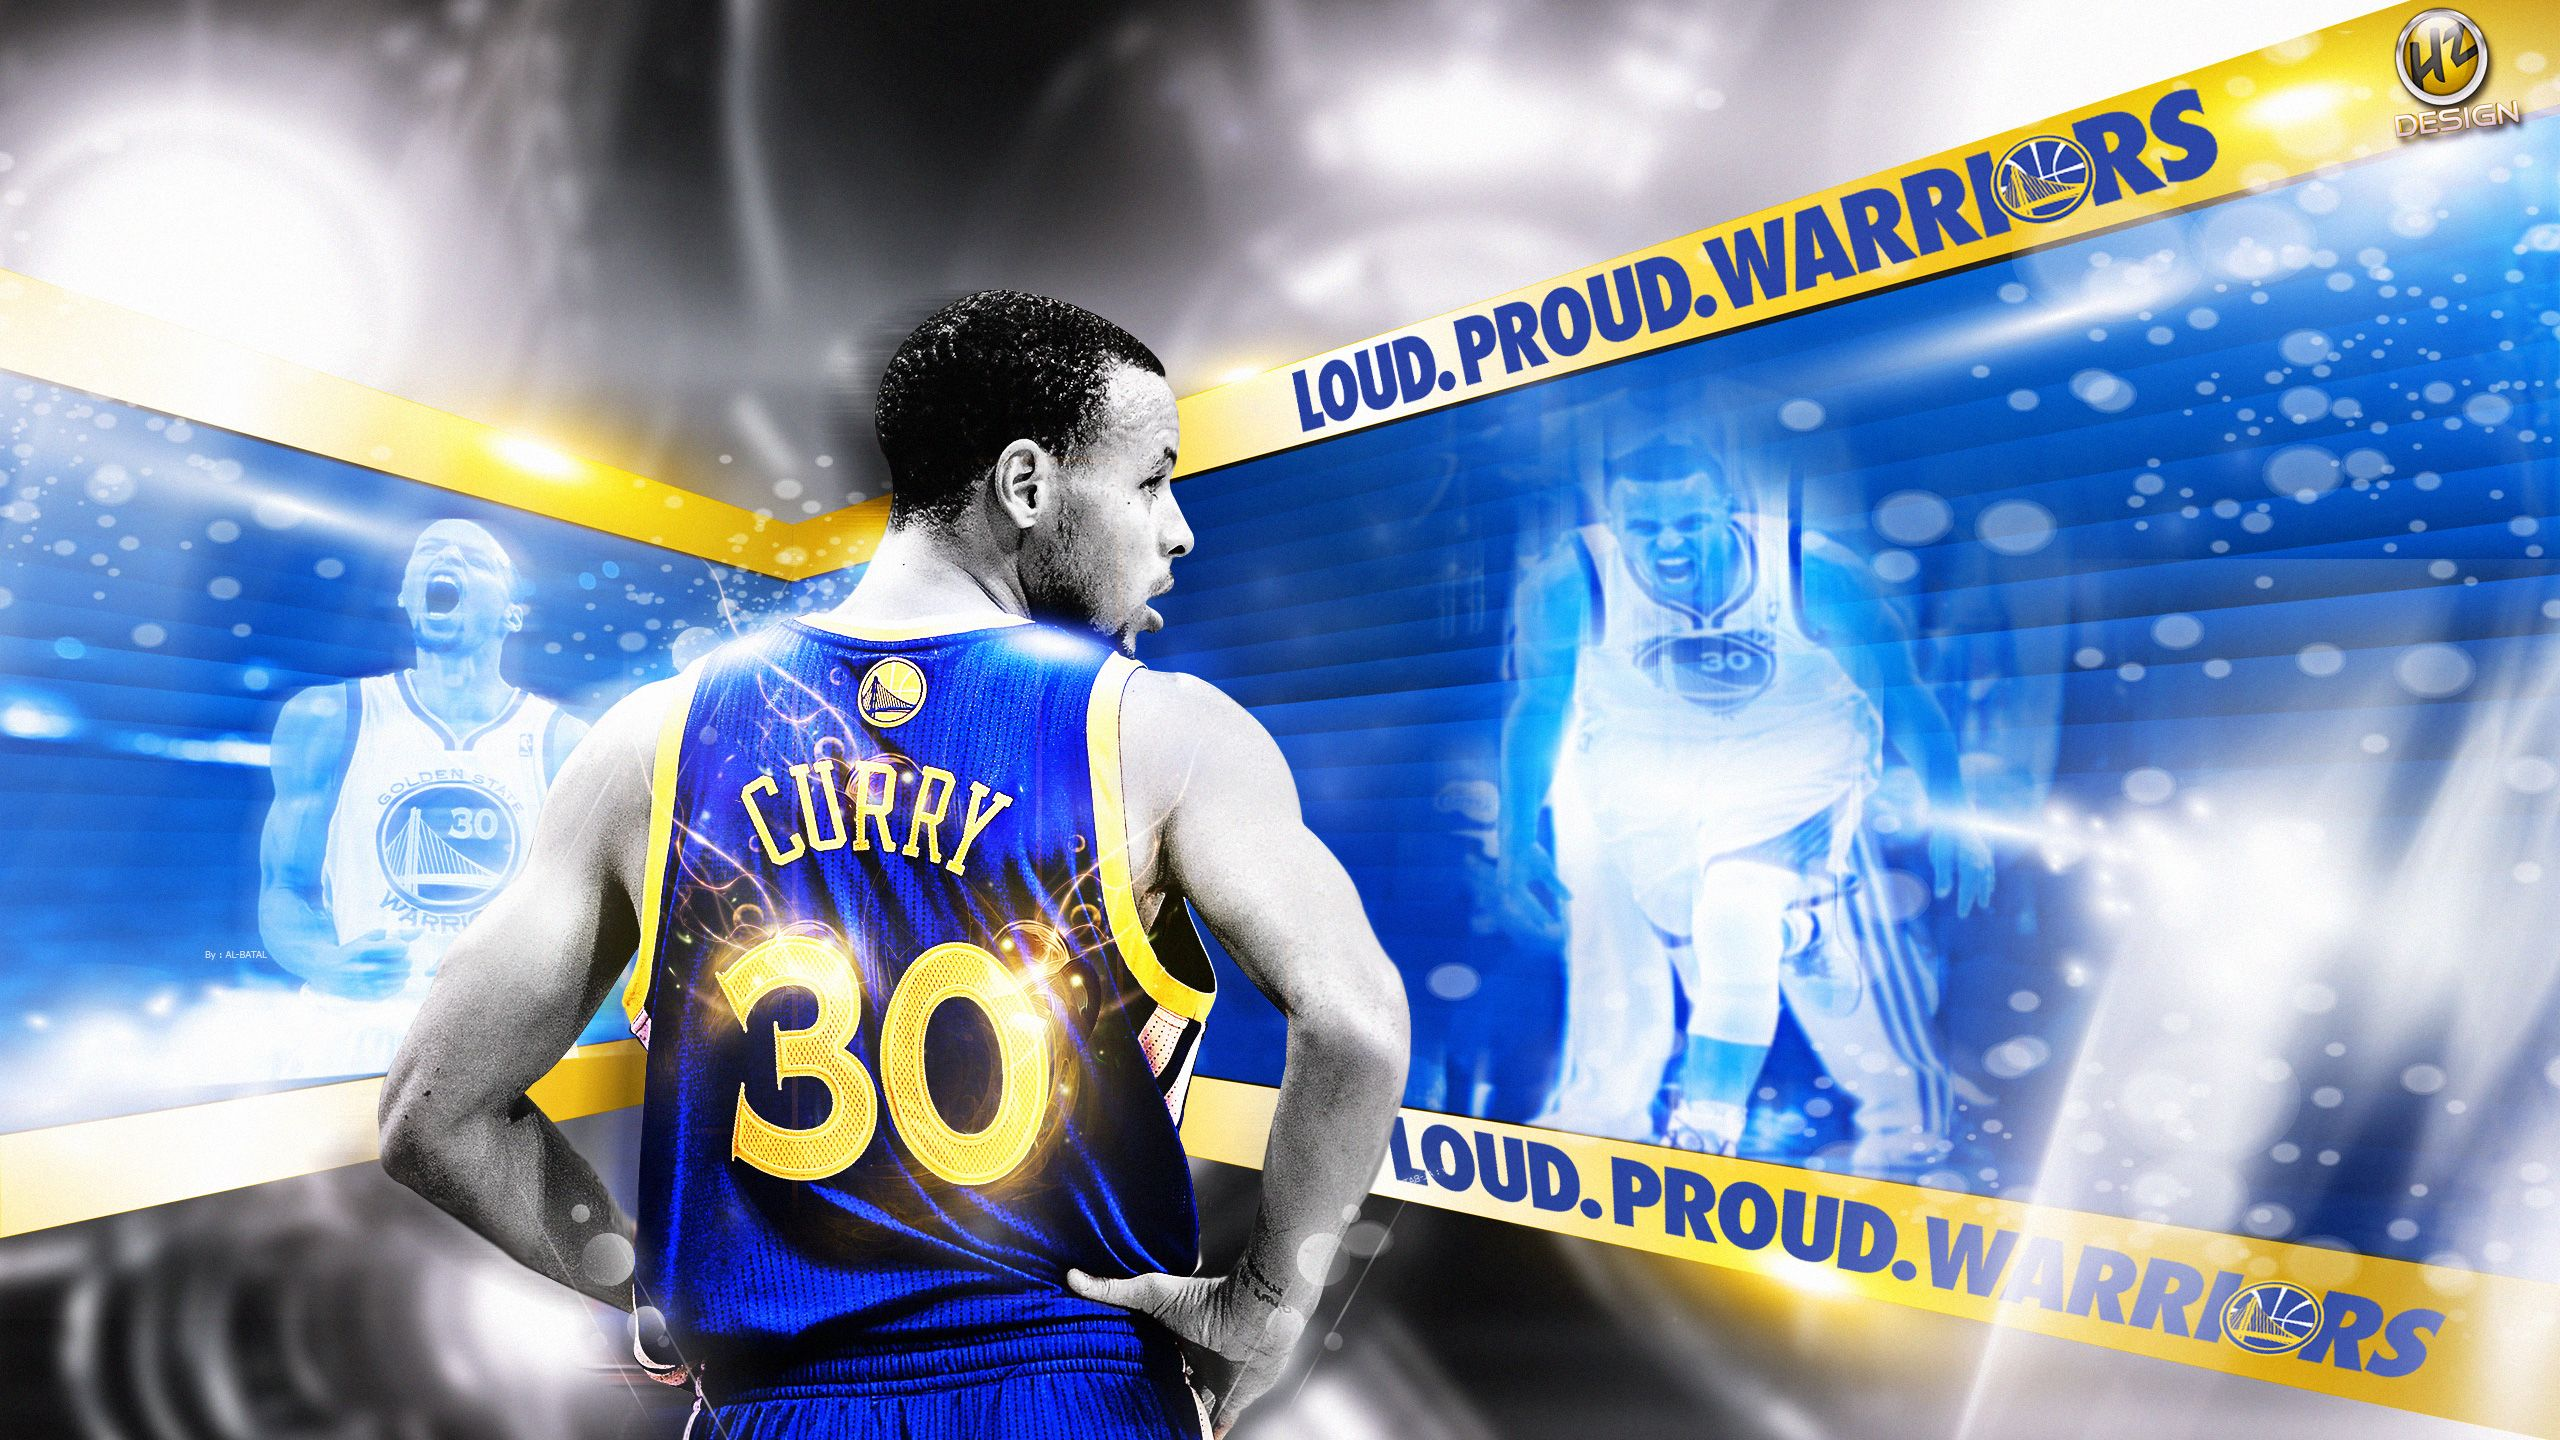 Stephen Curry Background Wallpaper